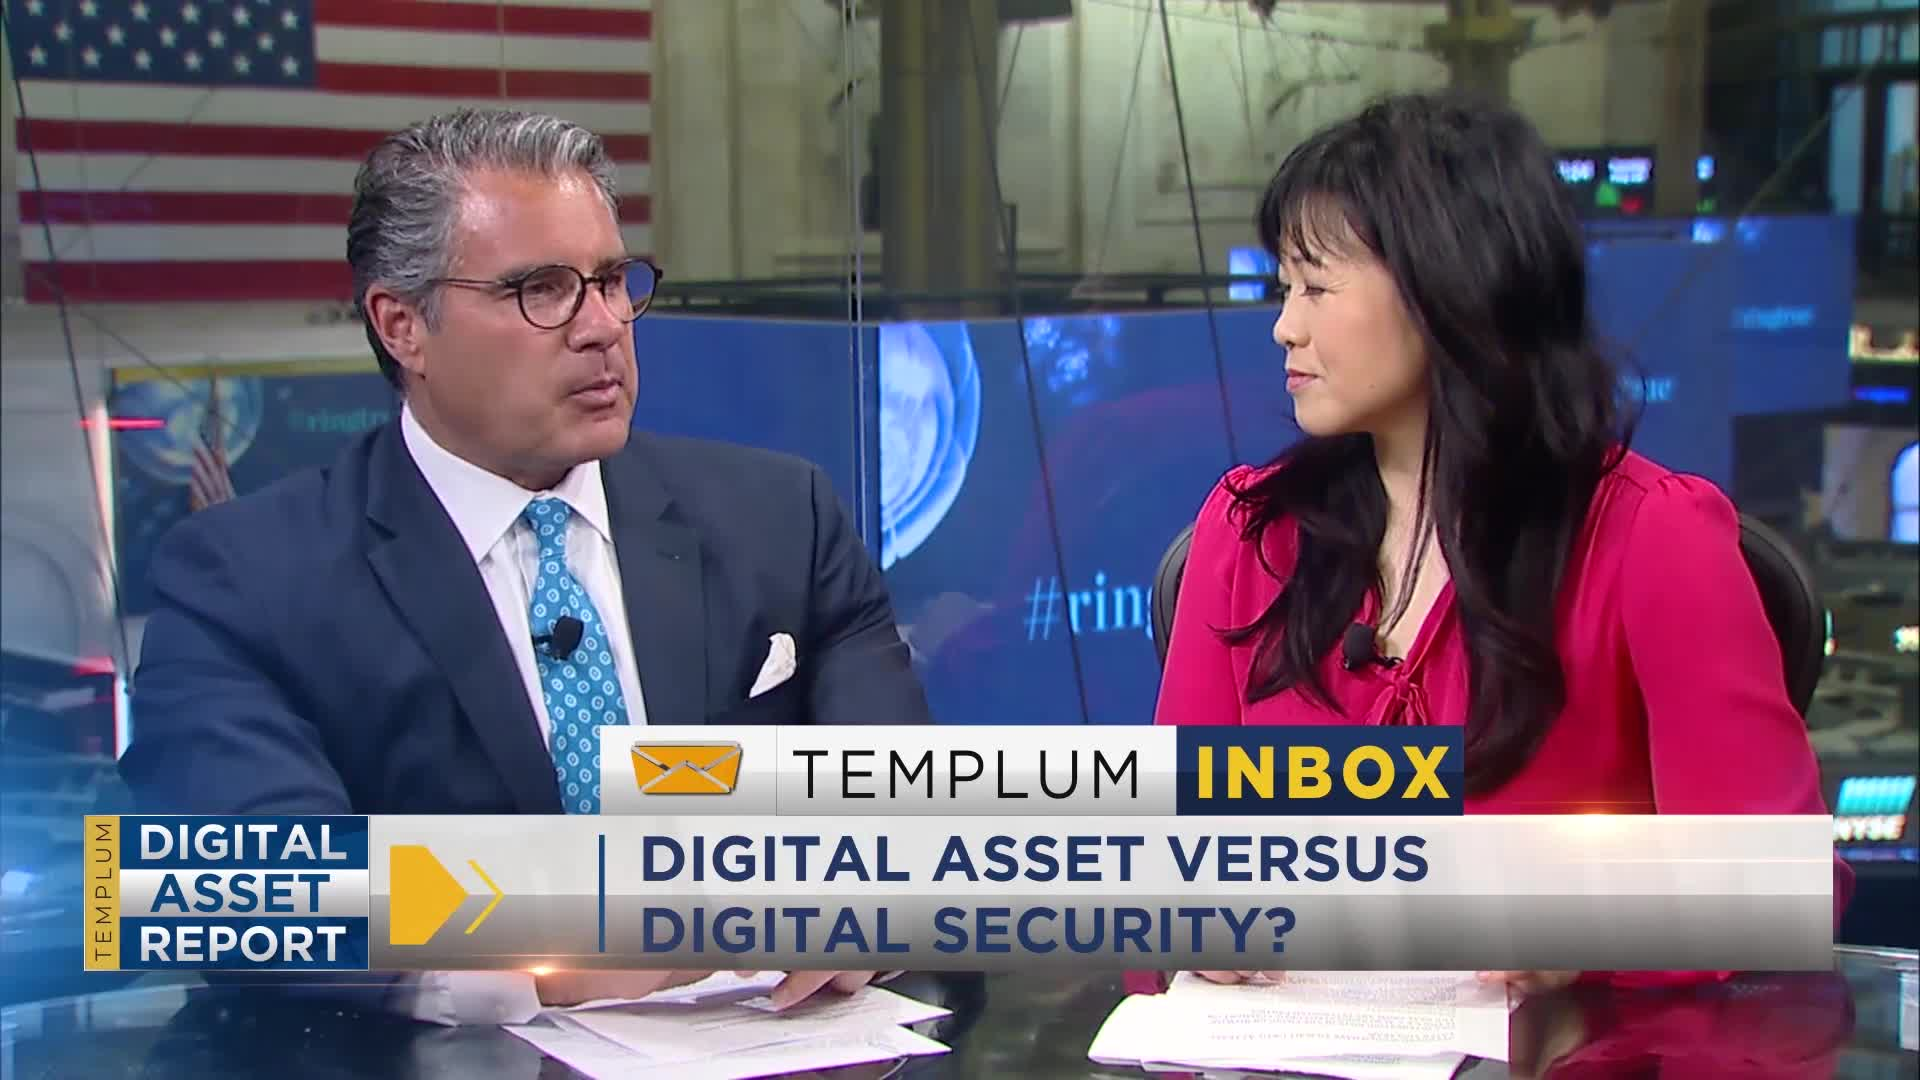 TEMPLUM_INBOX_Digital_Securities_vs_Digital_Assets.mp4